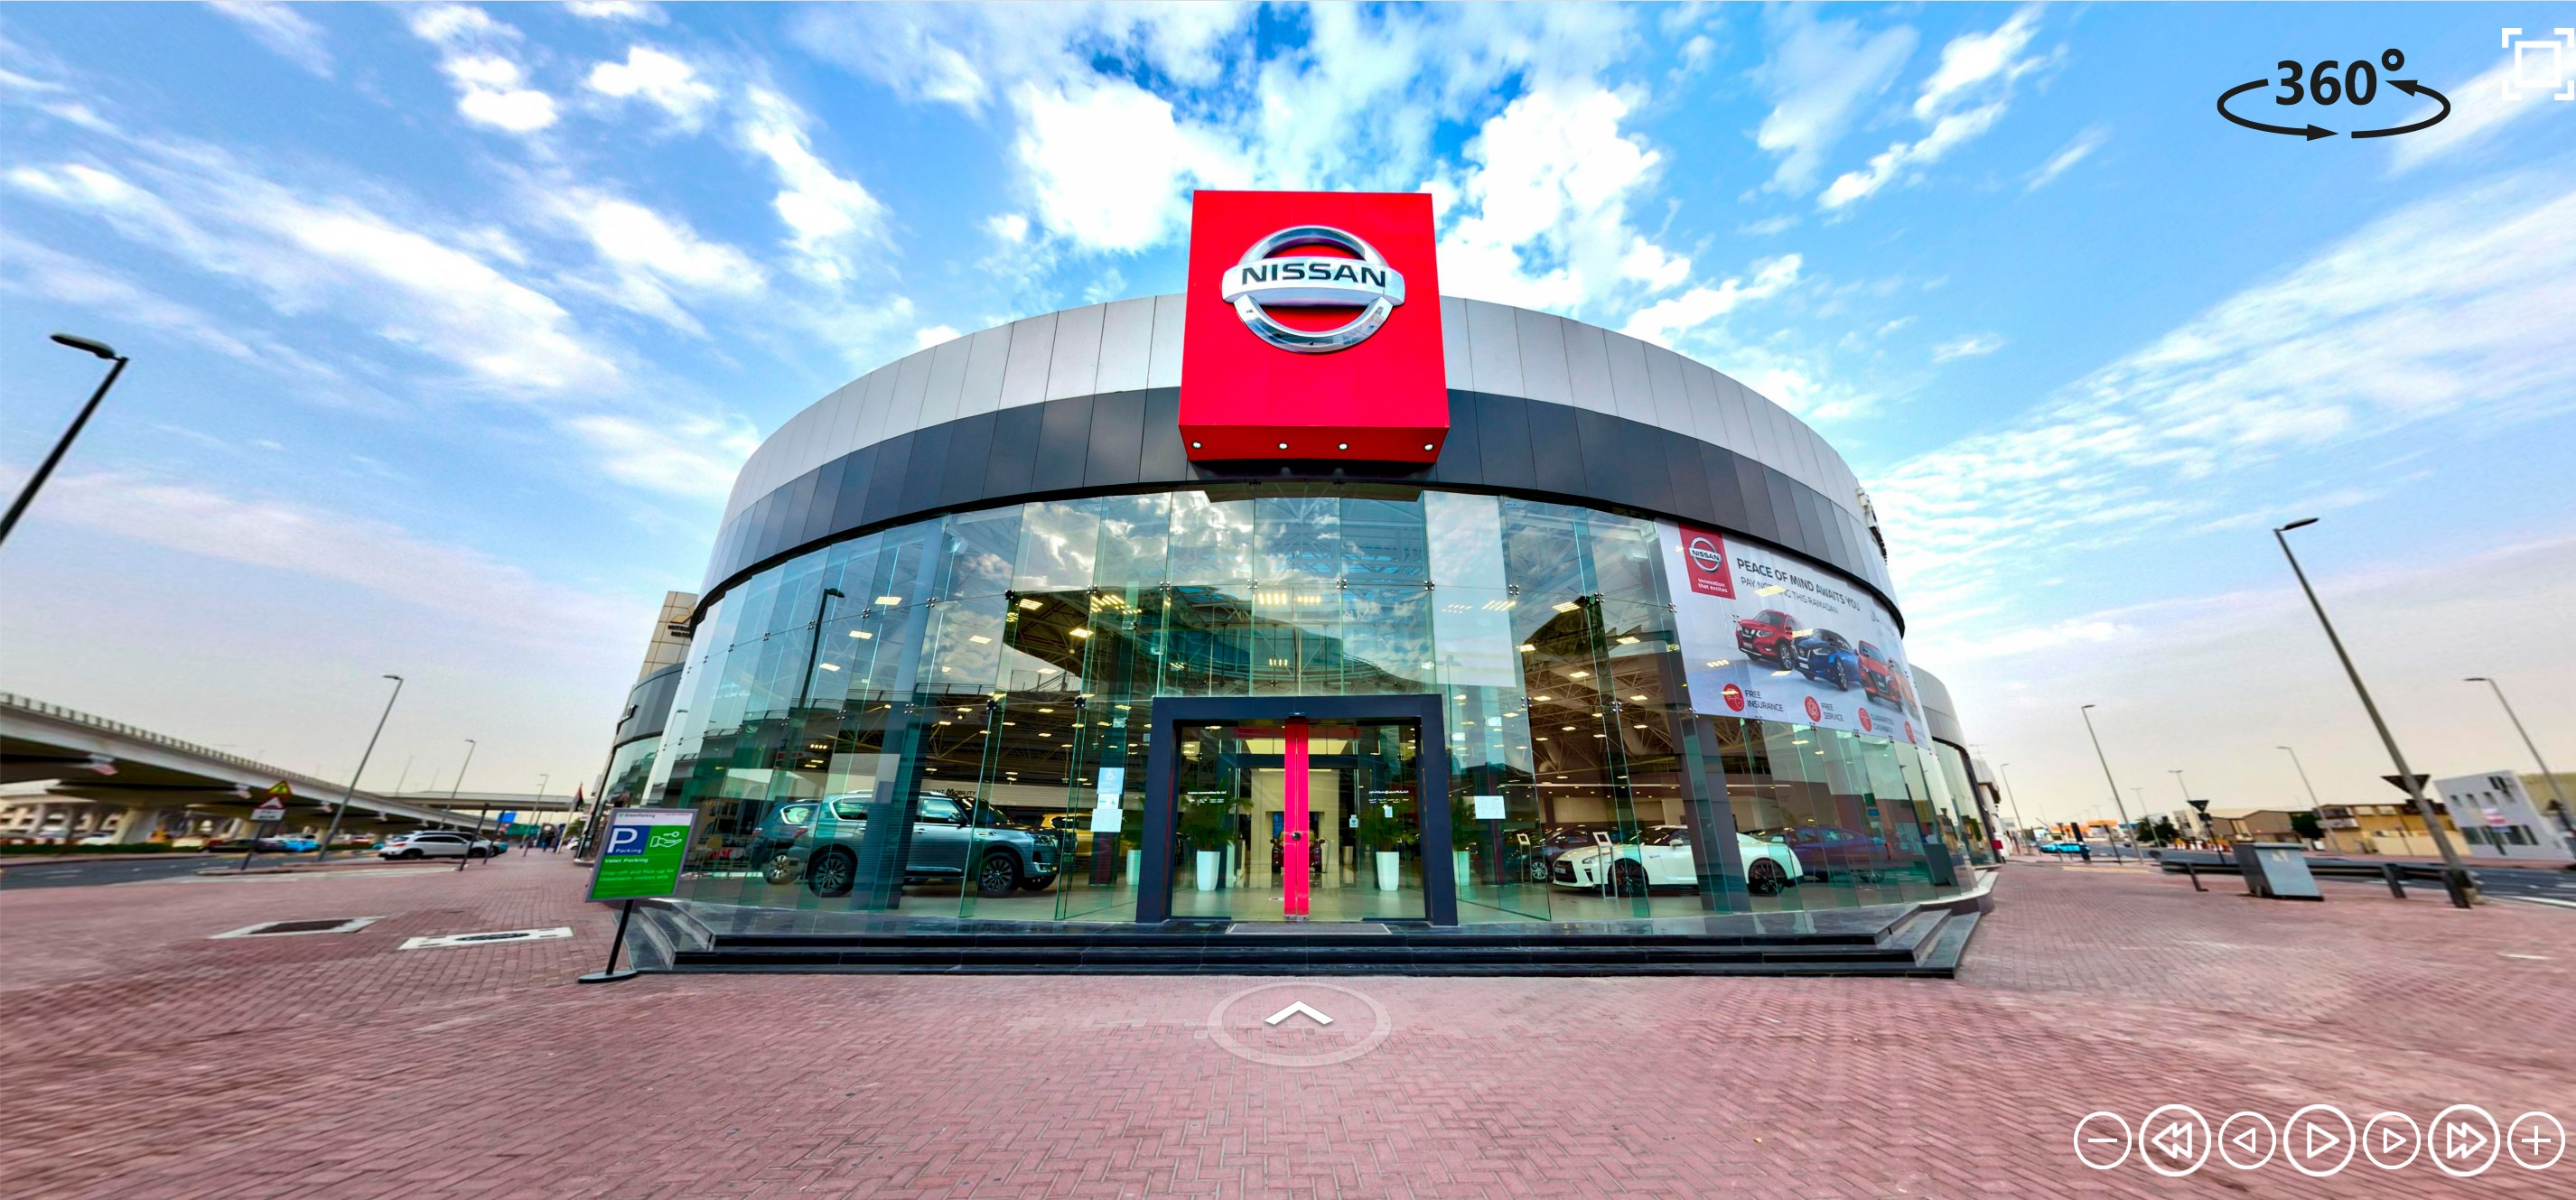 Arabian Automobiles' Nissan showrooms can now be visited virtually